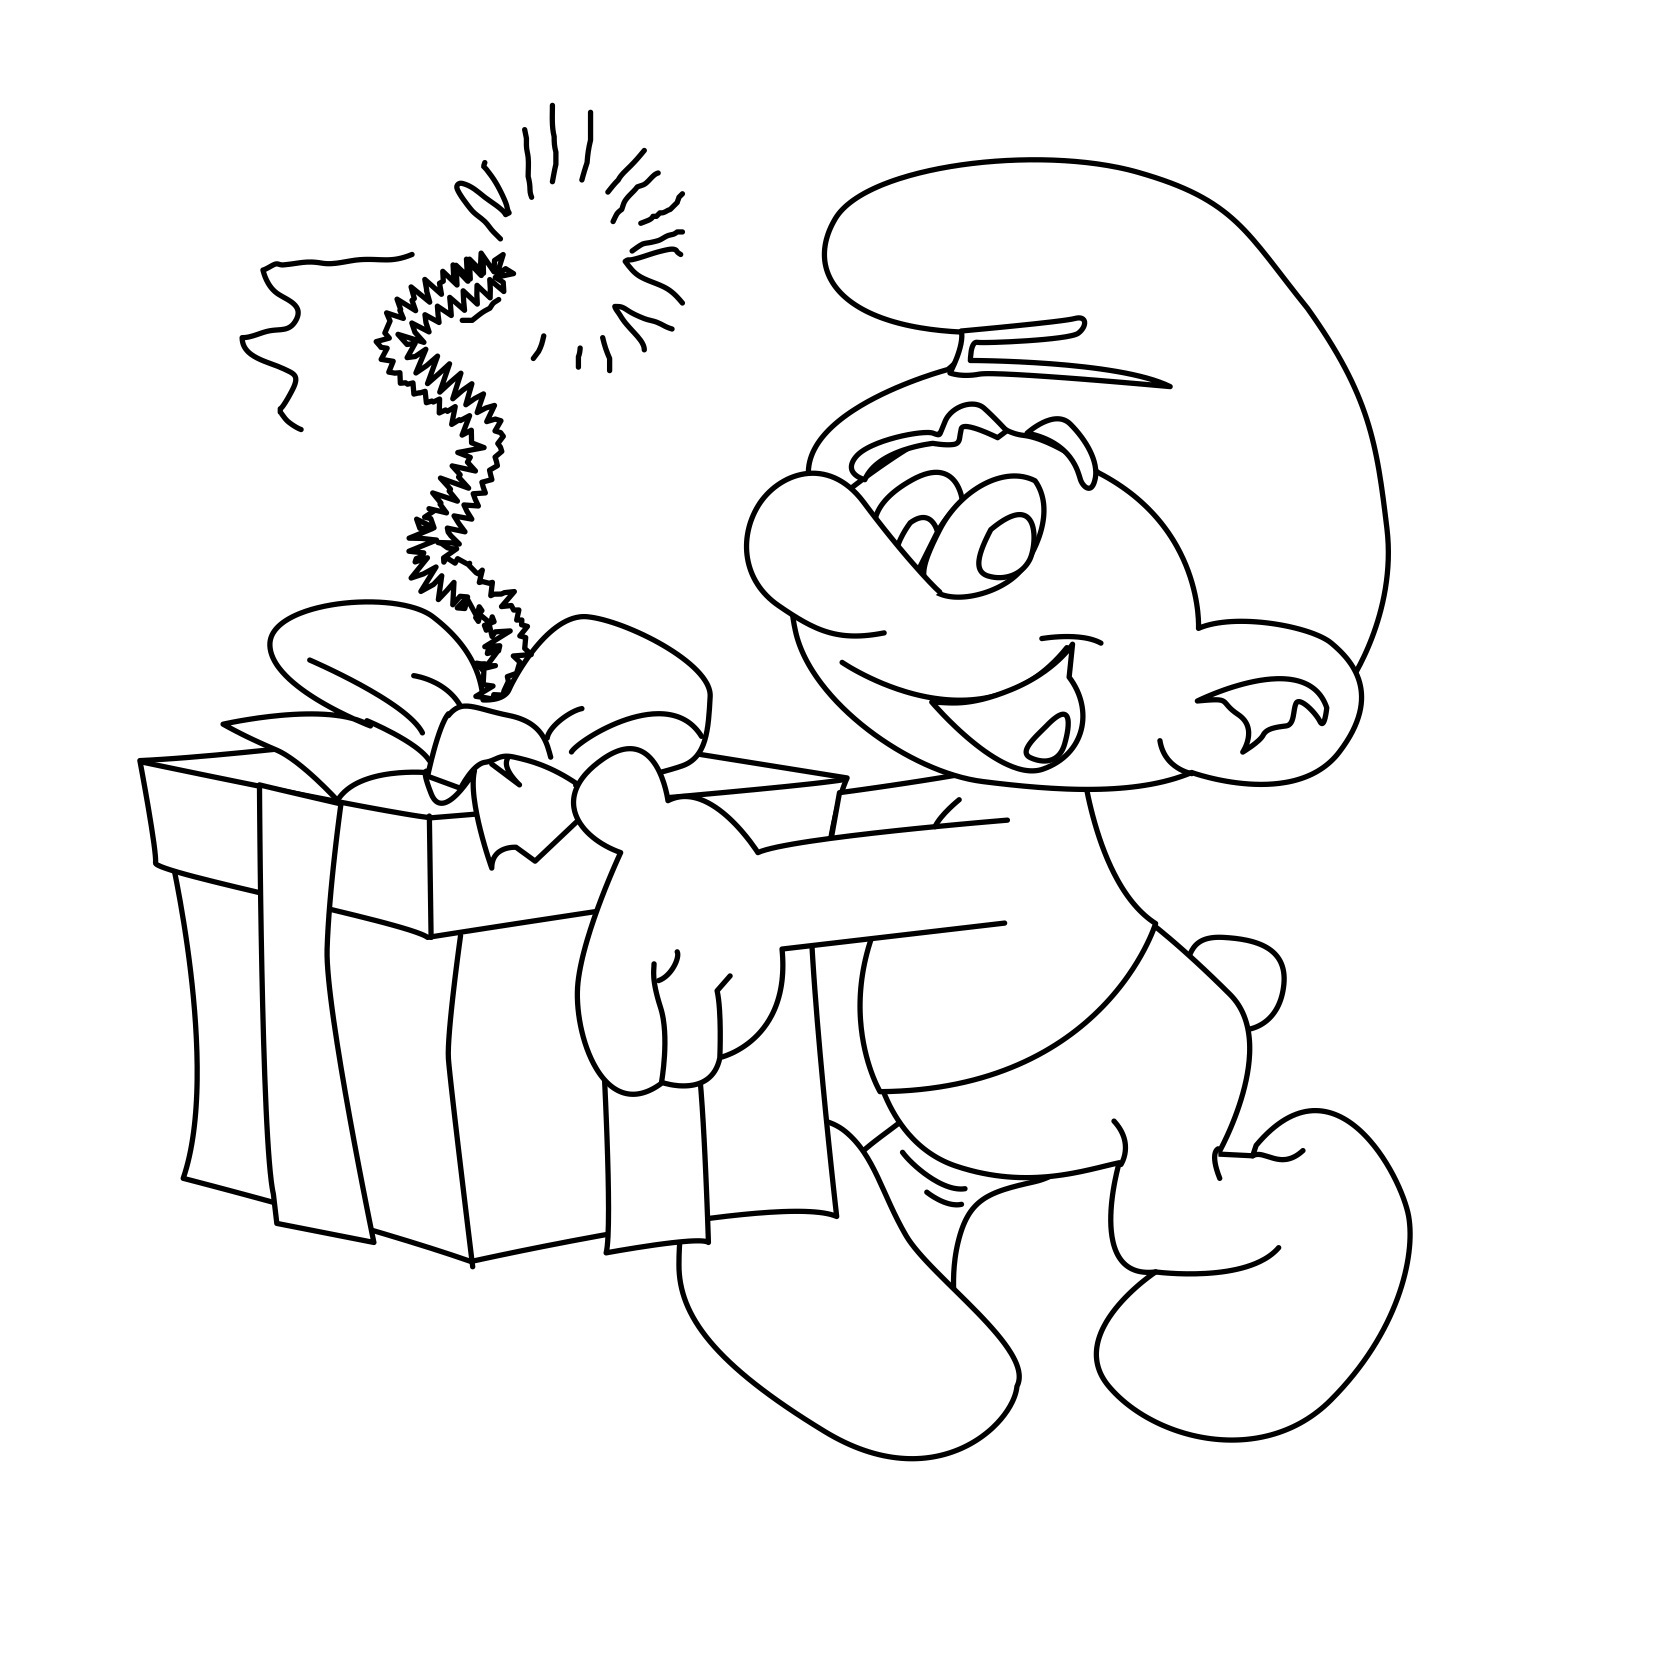 Smurfs Drawing at GetDrawings.com | Free for personal use Smurfs ...